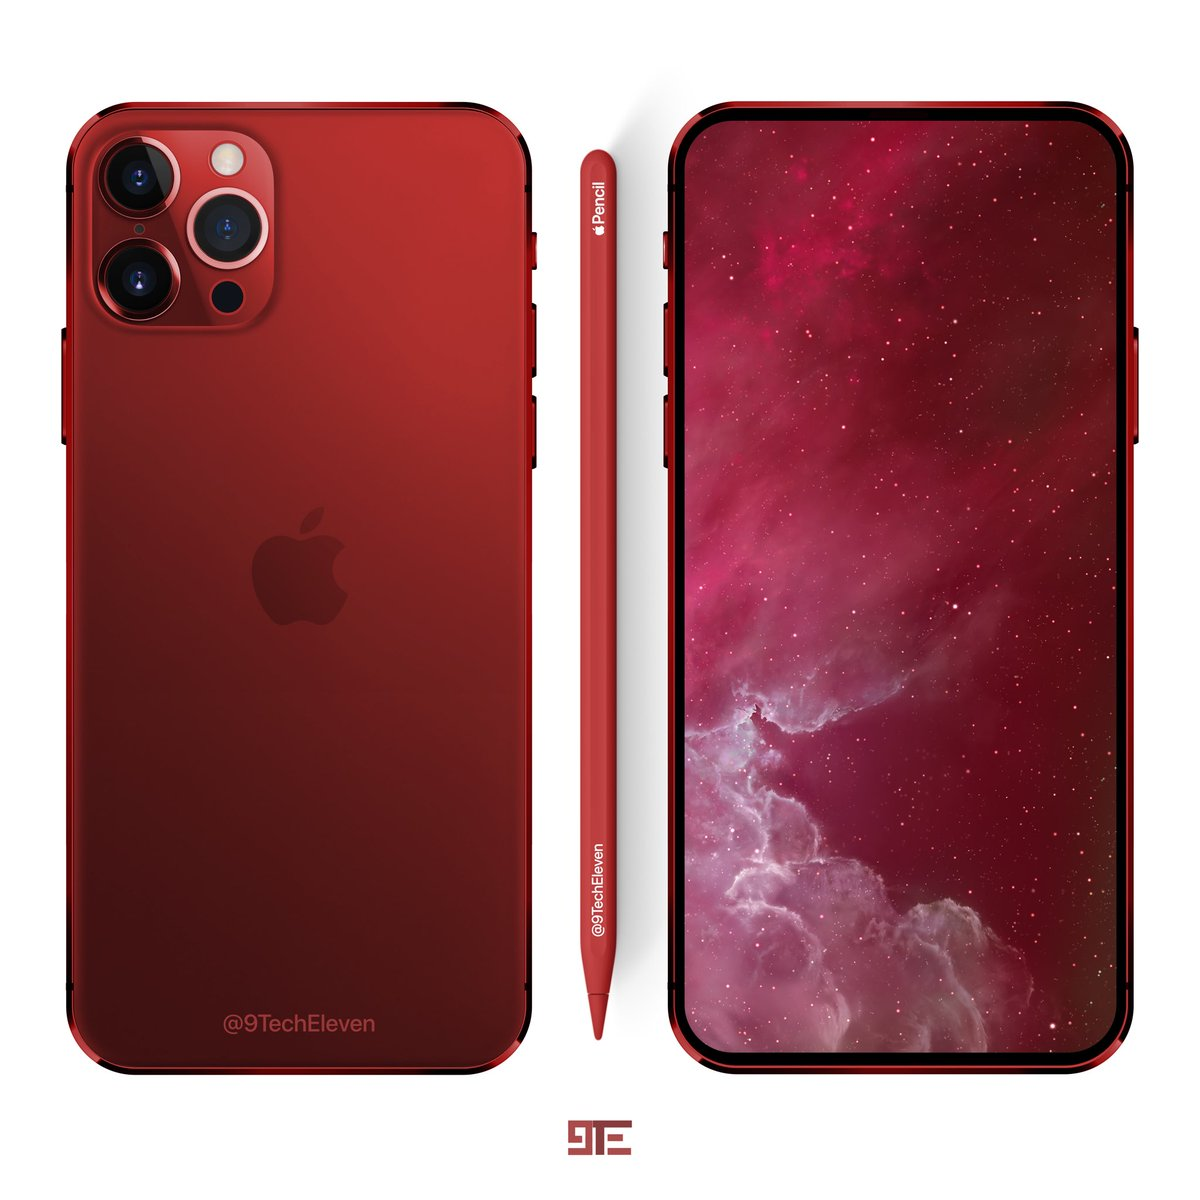 9TechEleven on Twitter iPhone 2020 Red Concept iPhone 5 modded 1200x1200